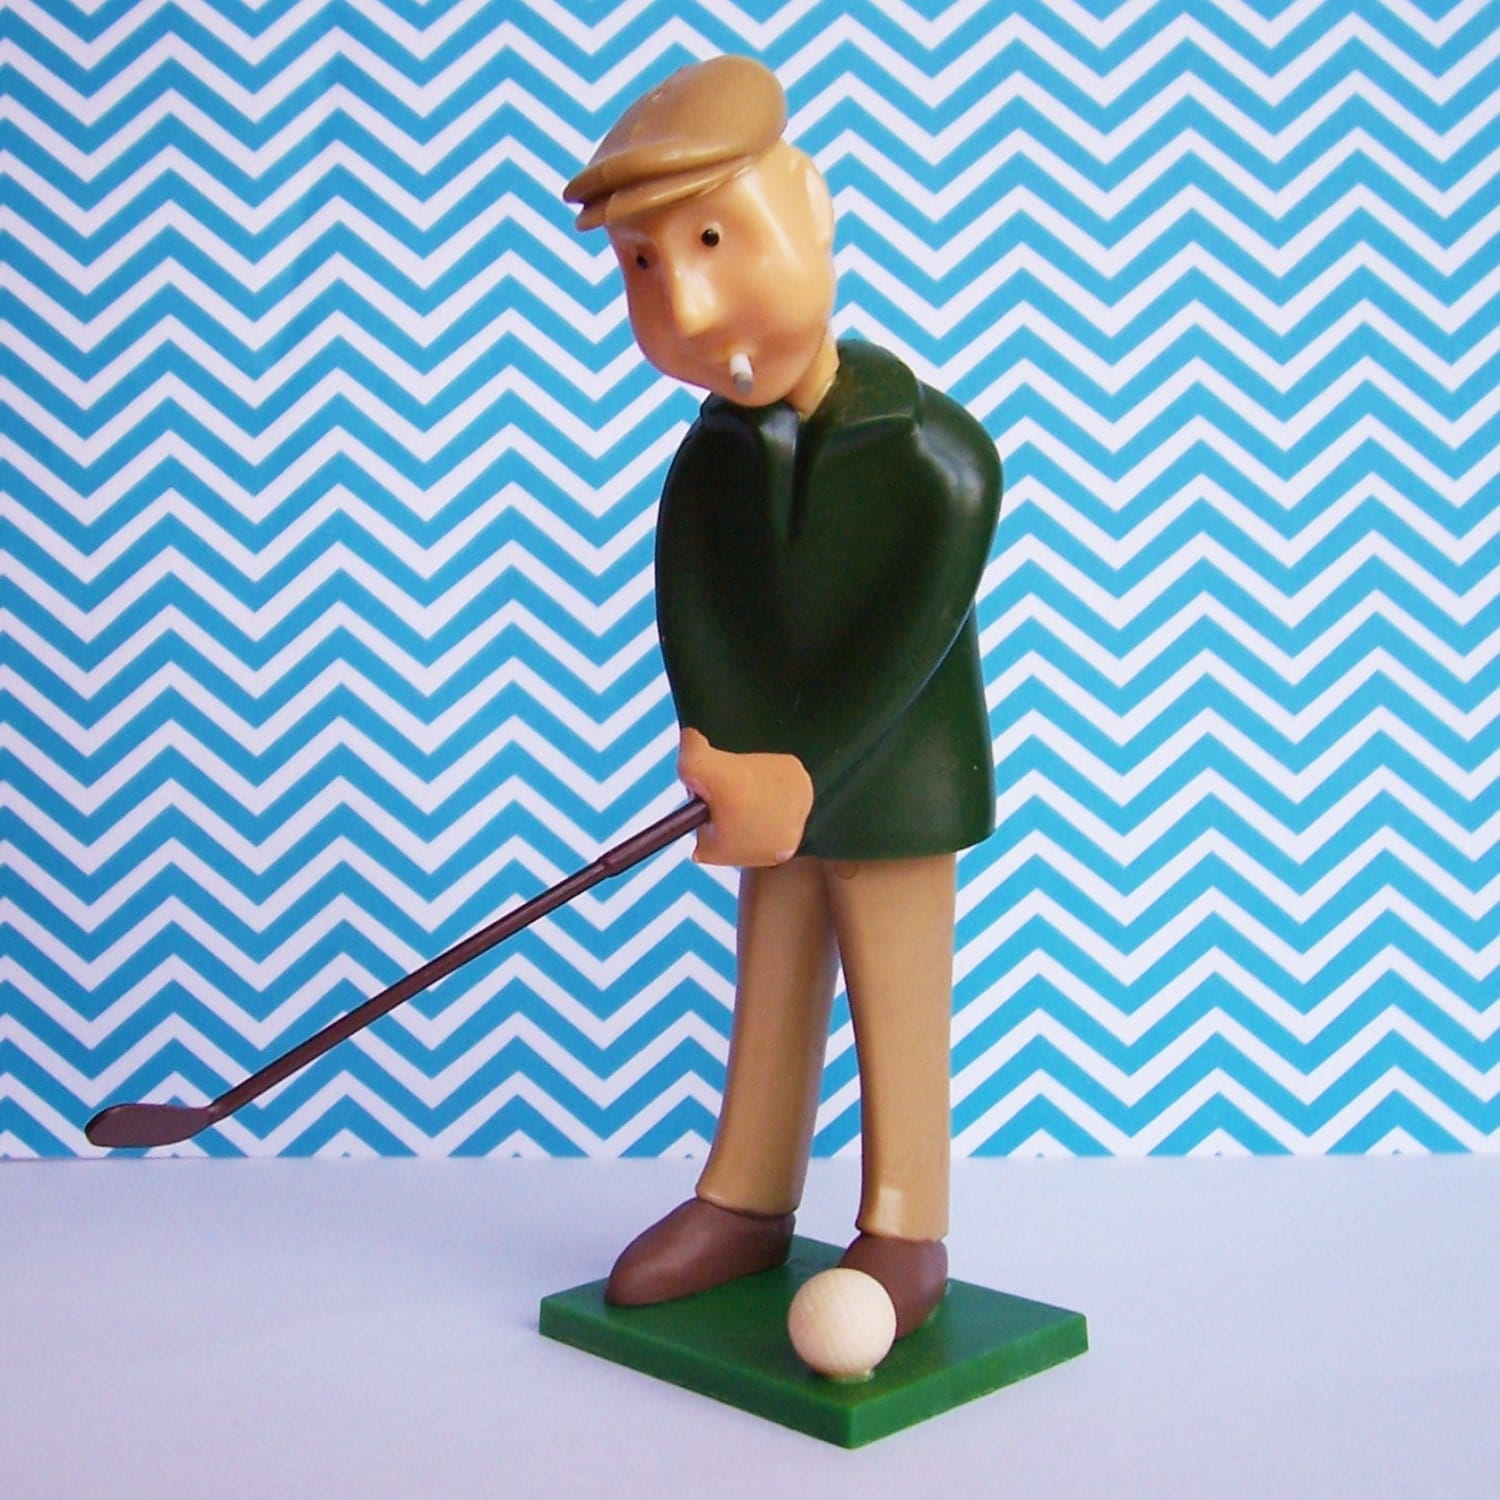 golf wedding cake toppers ireland wilton golfer cake topper 1972 from luluscupcakeboutique 14851